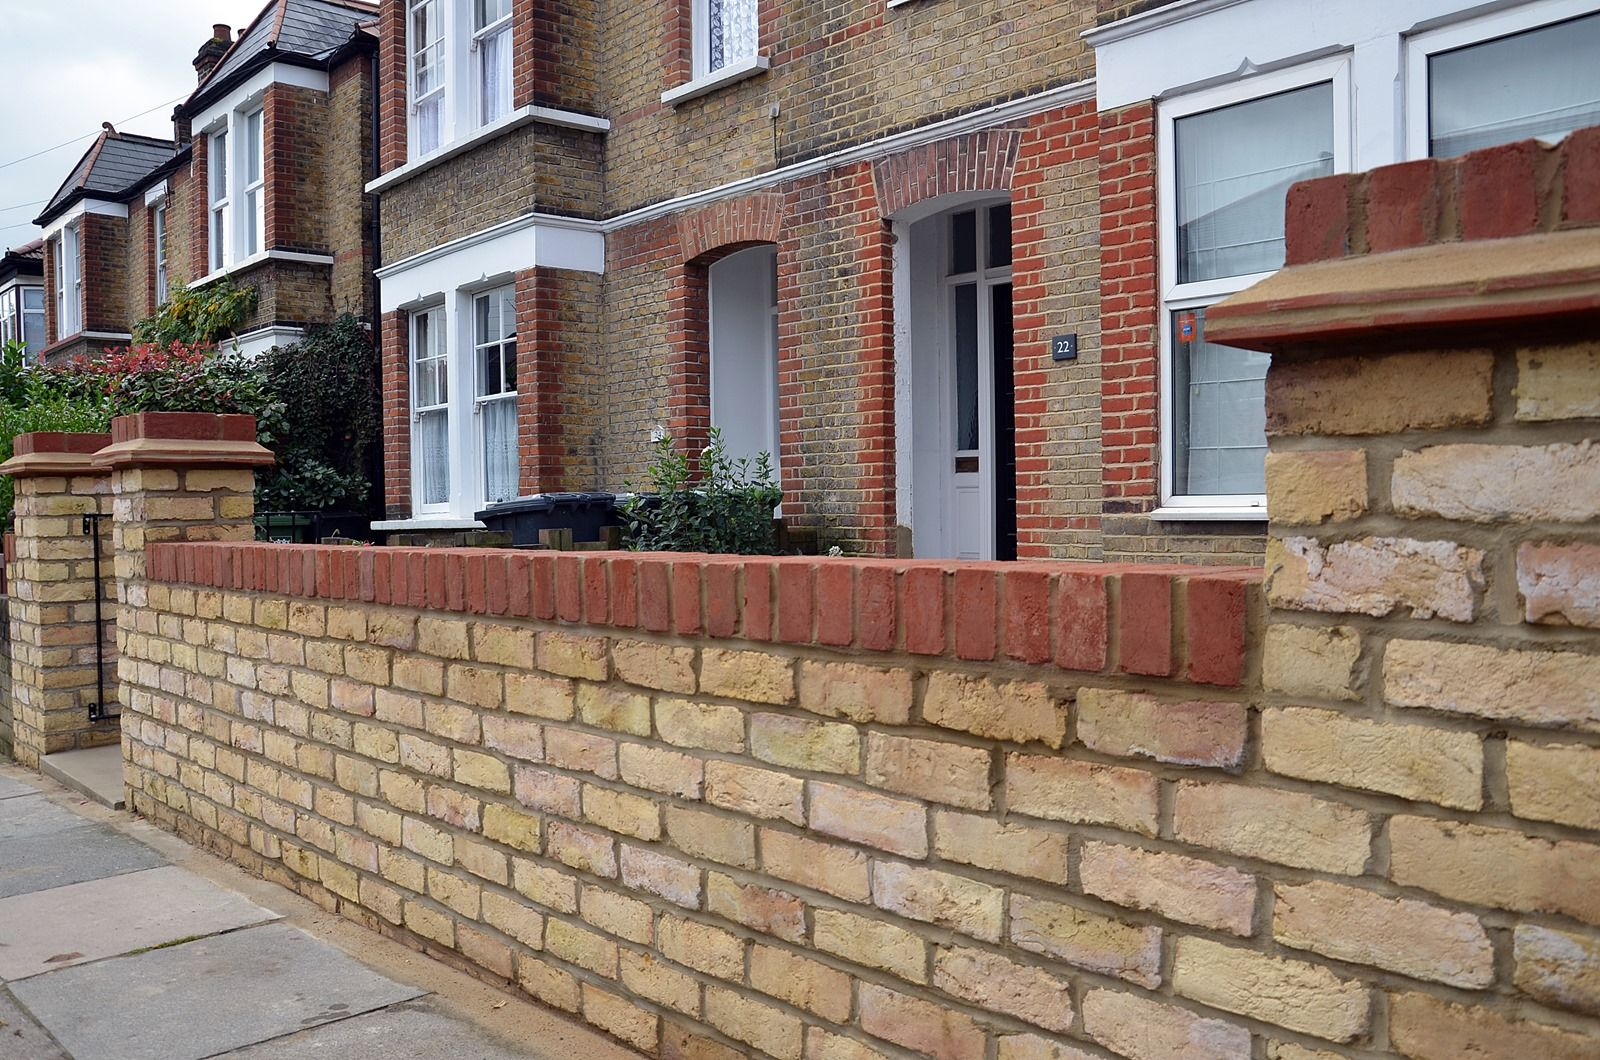 London Brick Work Pillars For Front Garden Wall   Google Search